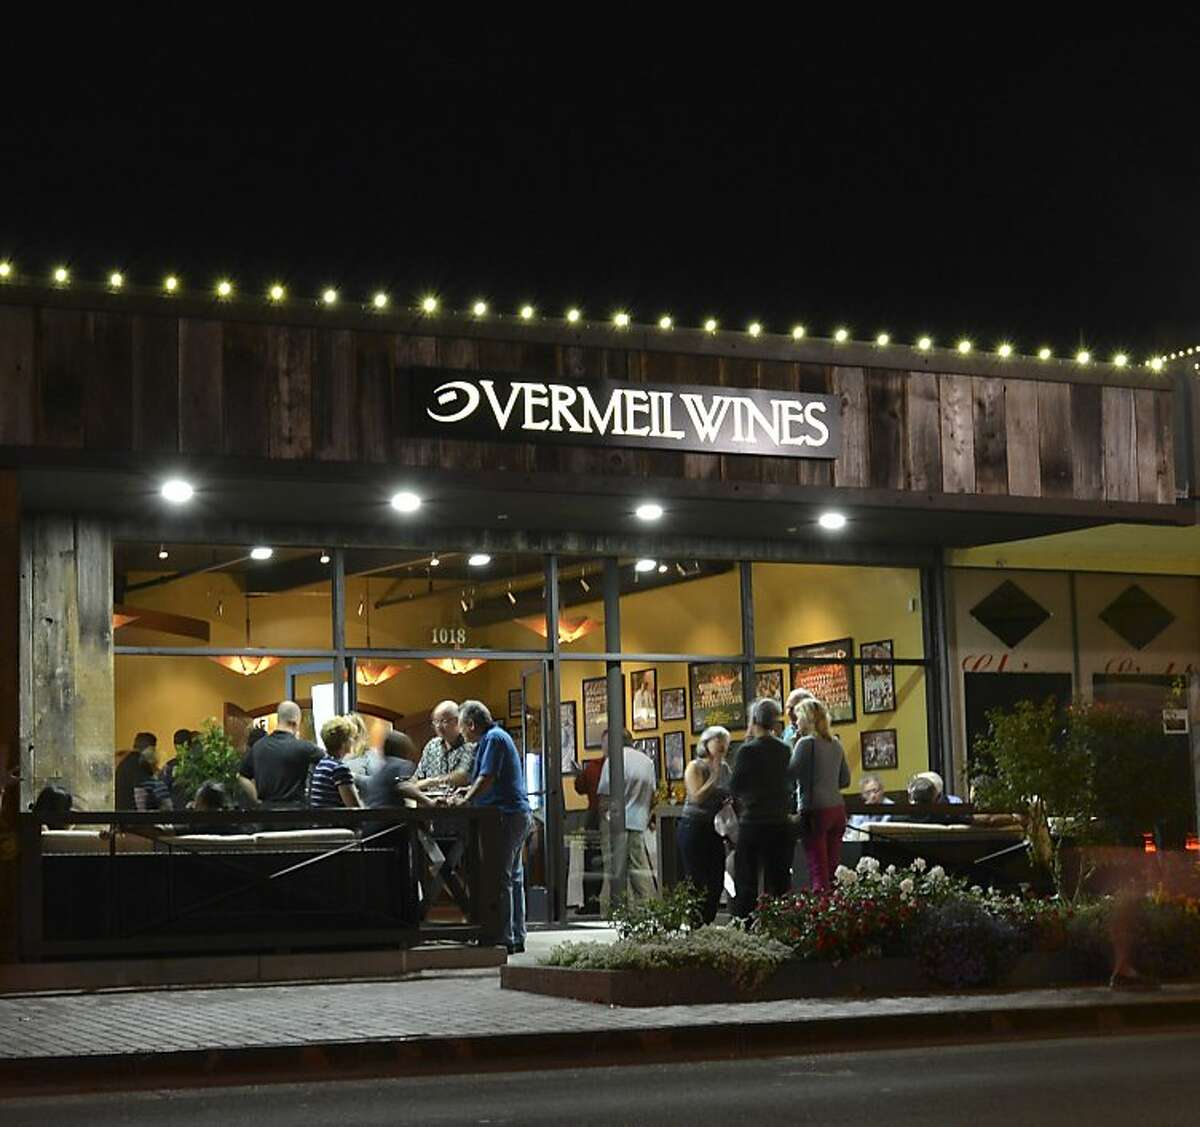 Vermeil Wines opened a satellite salon at First and Main streets in downtown Napa last summer.